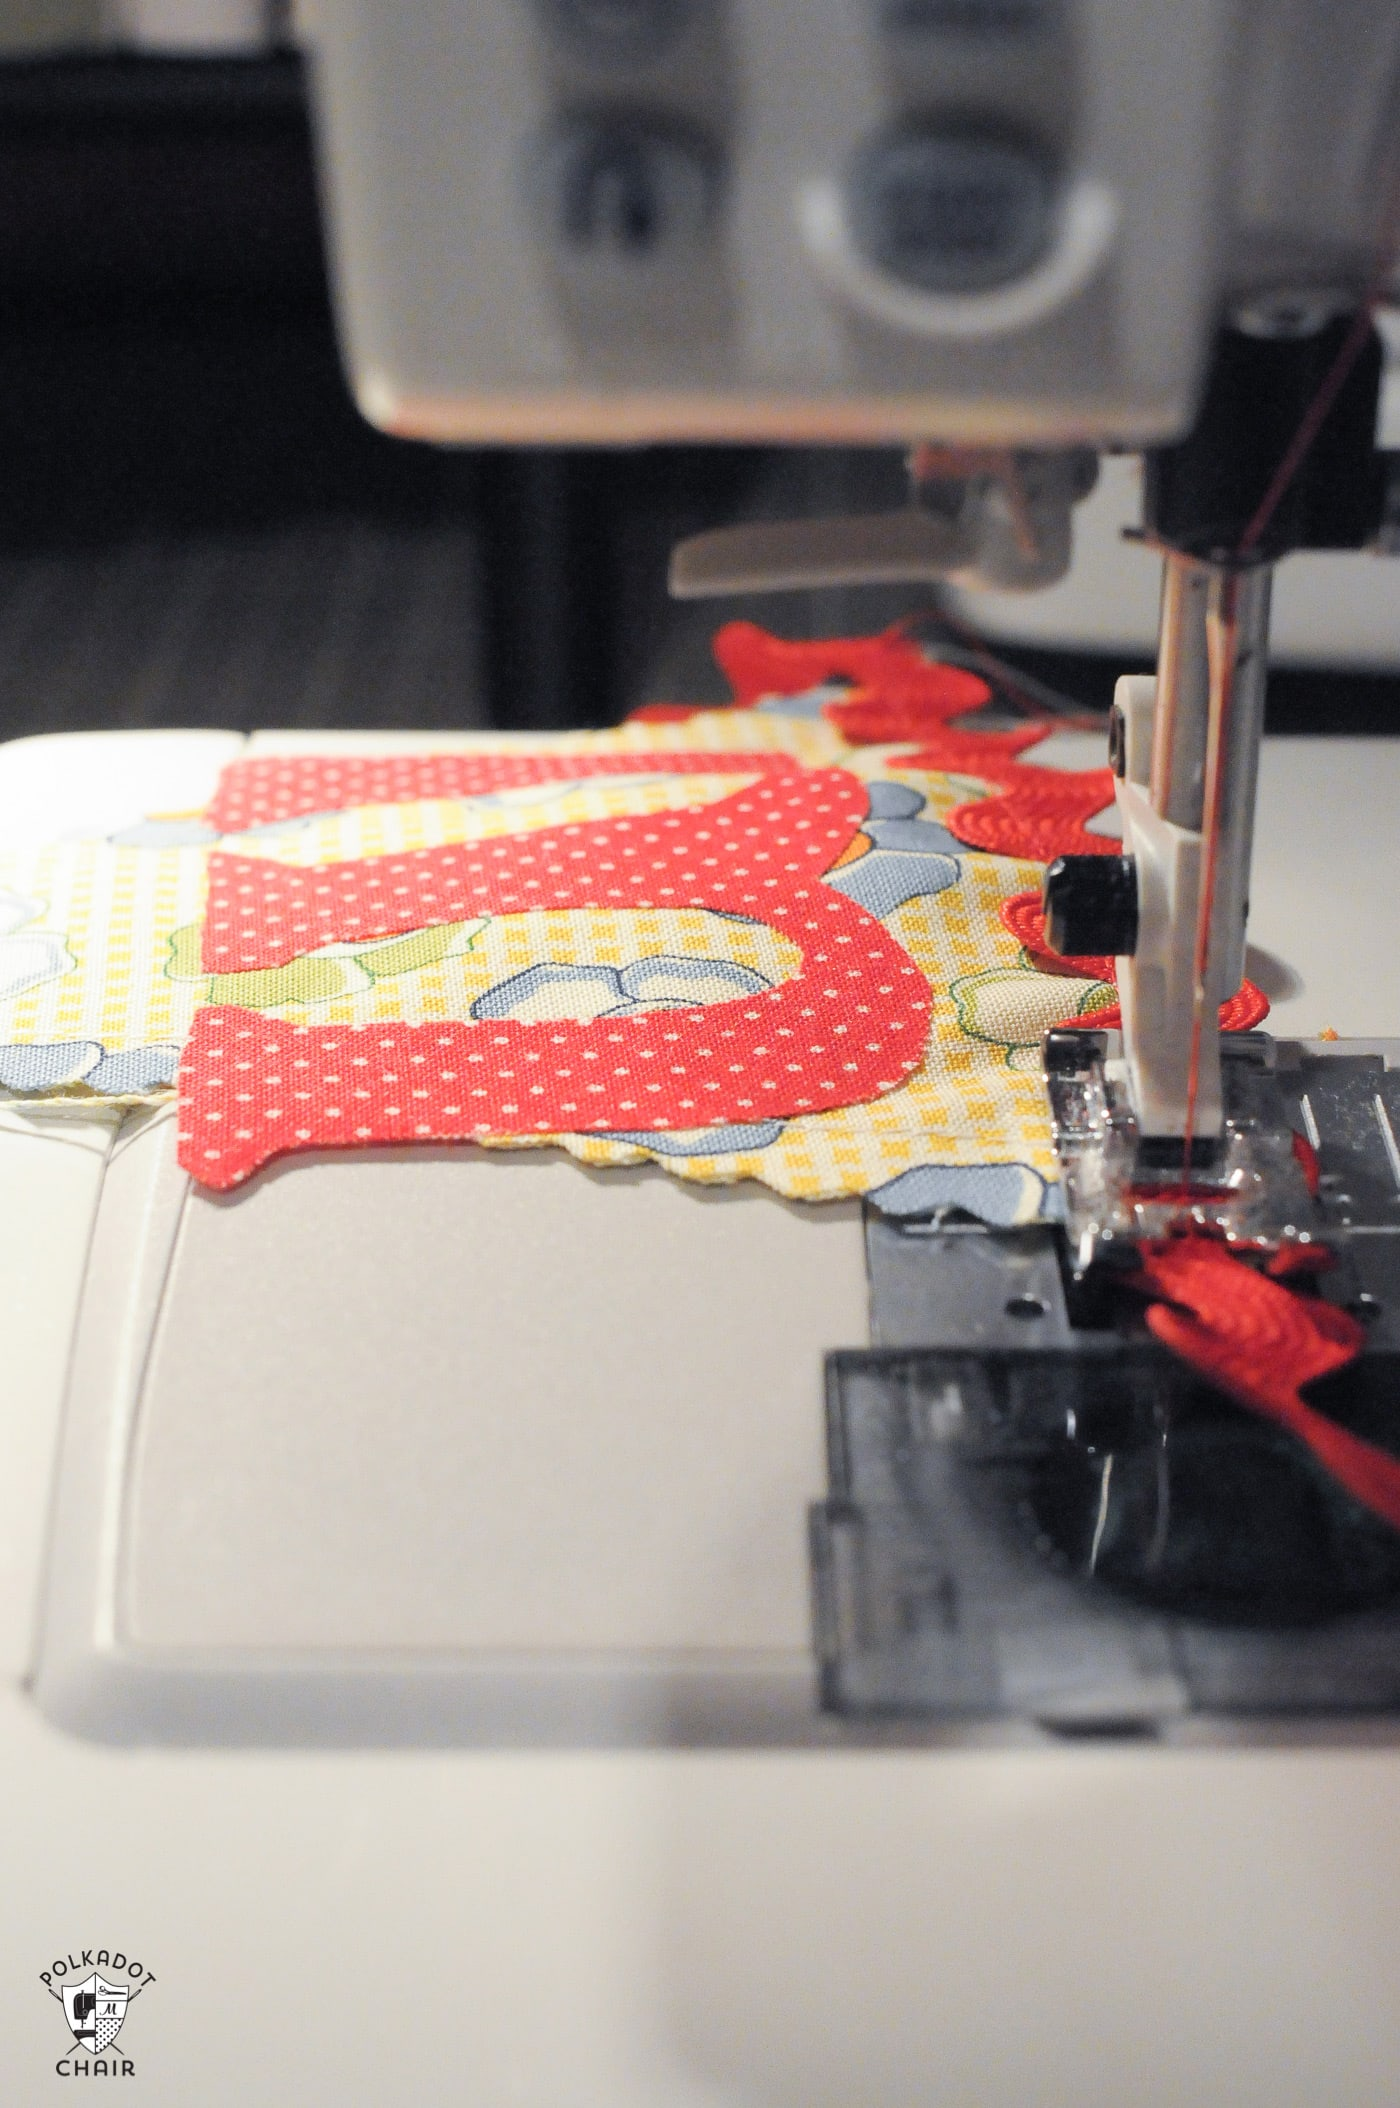 fabric banner being sew on sewing machine